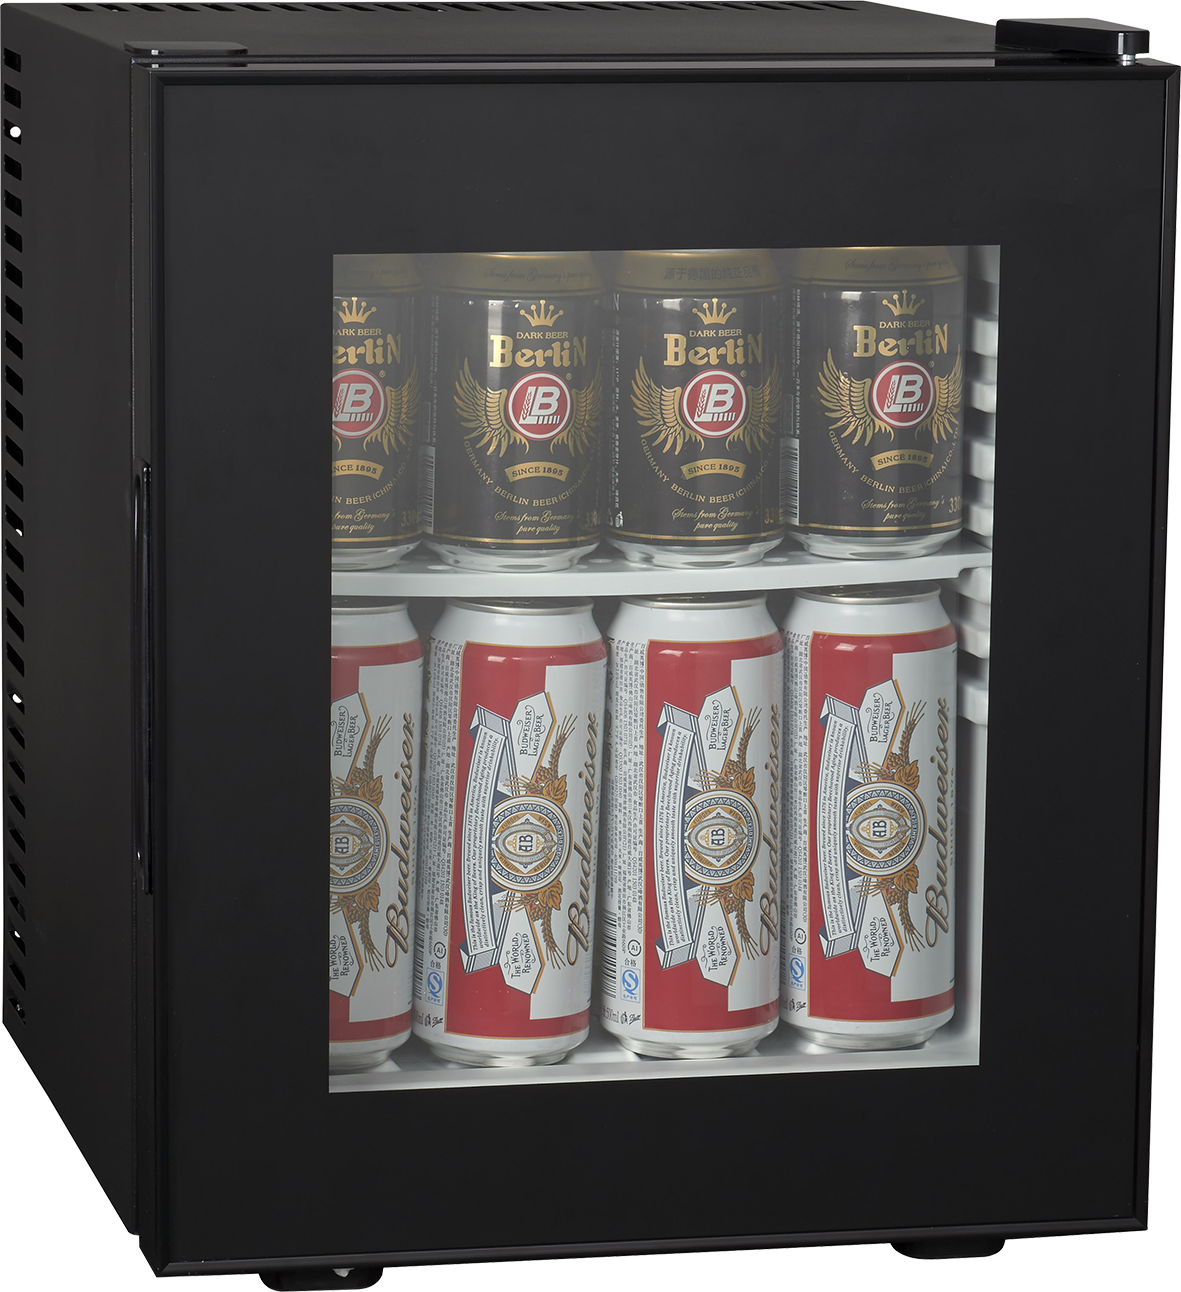 rfrigrateur mini bar 19l vitr 100 silencieux brandy best brandy best. Black Bedroom Furniture Sets. Home Design Ideas